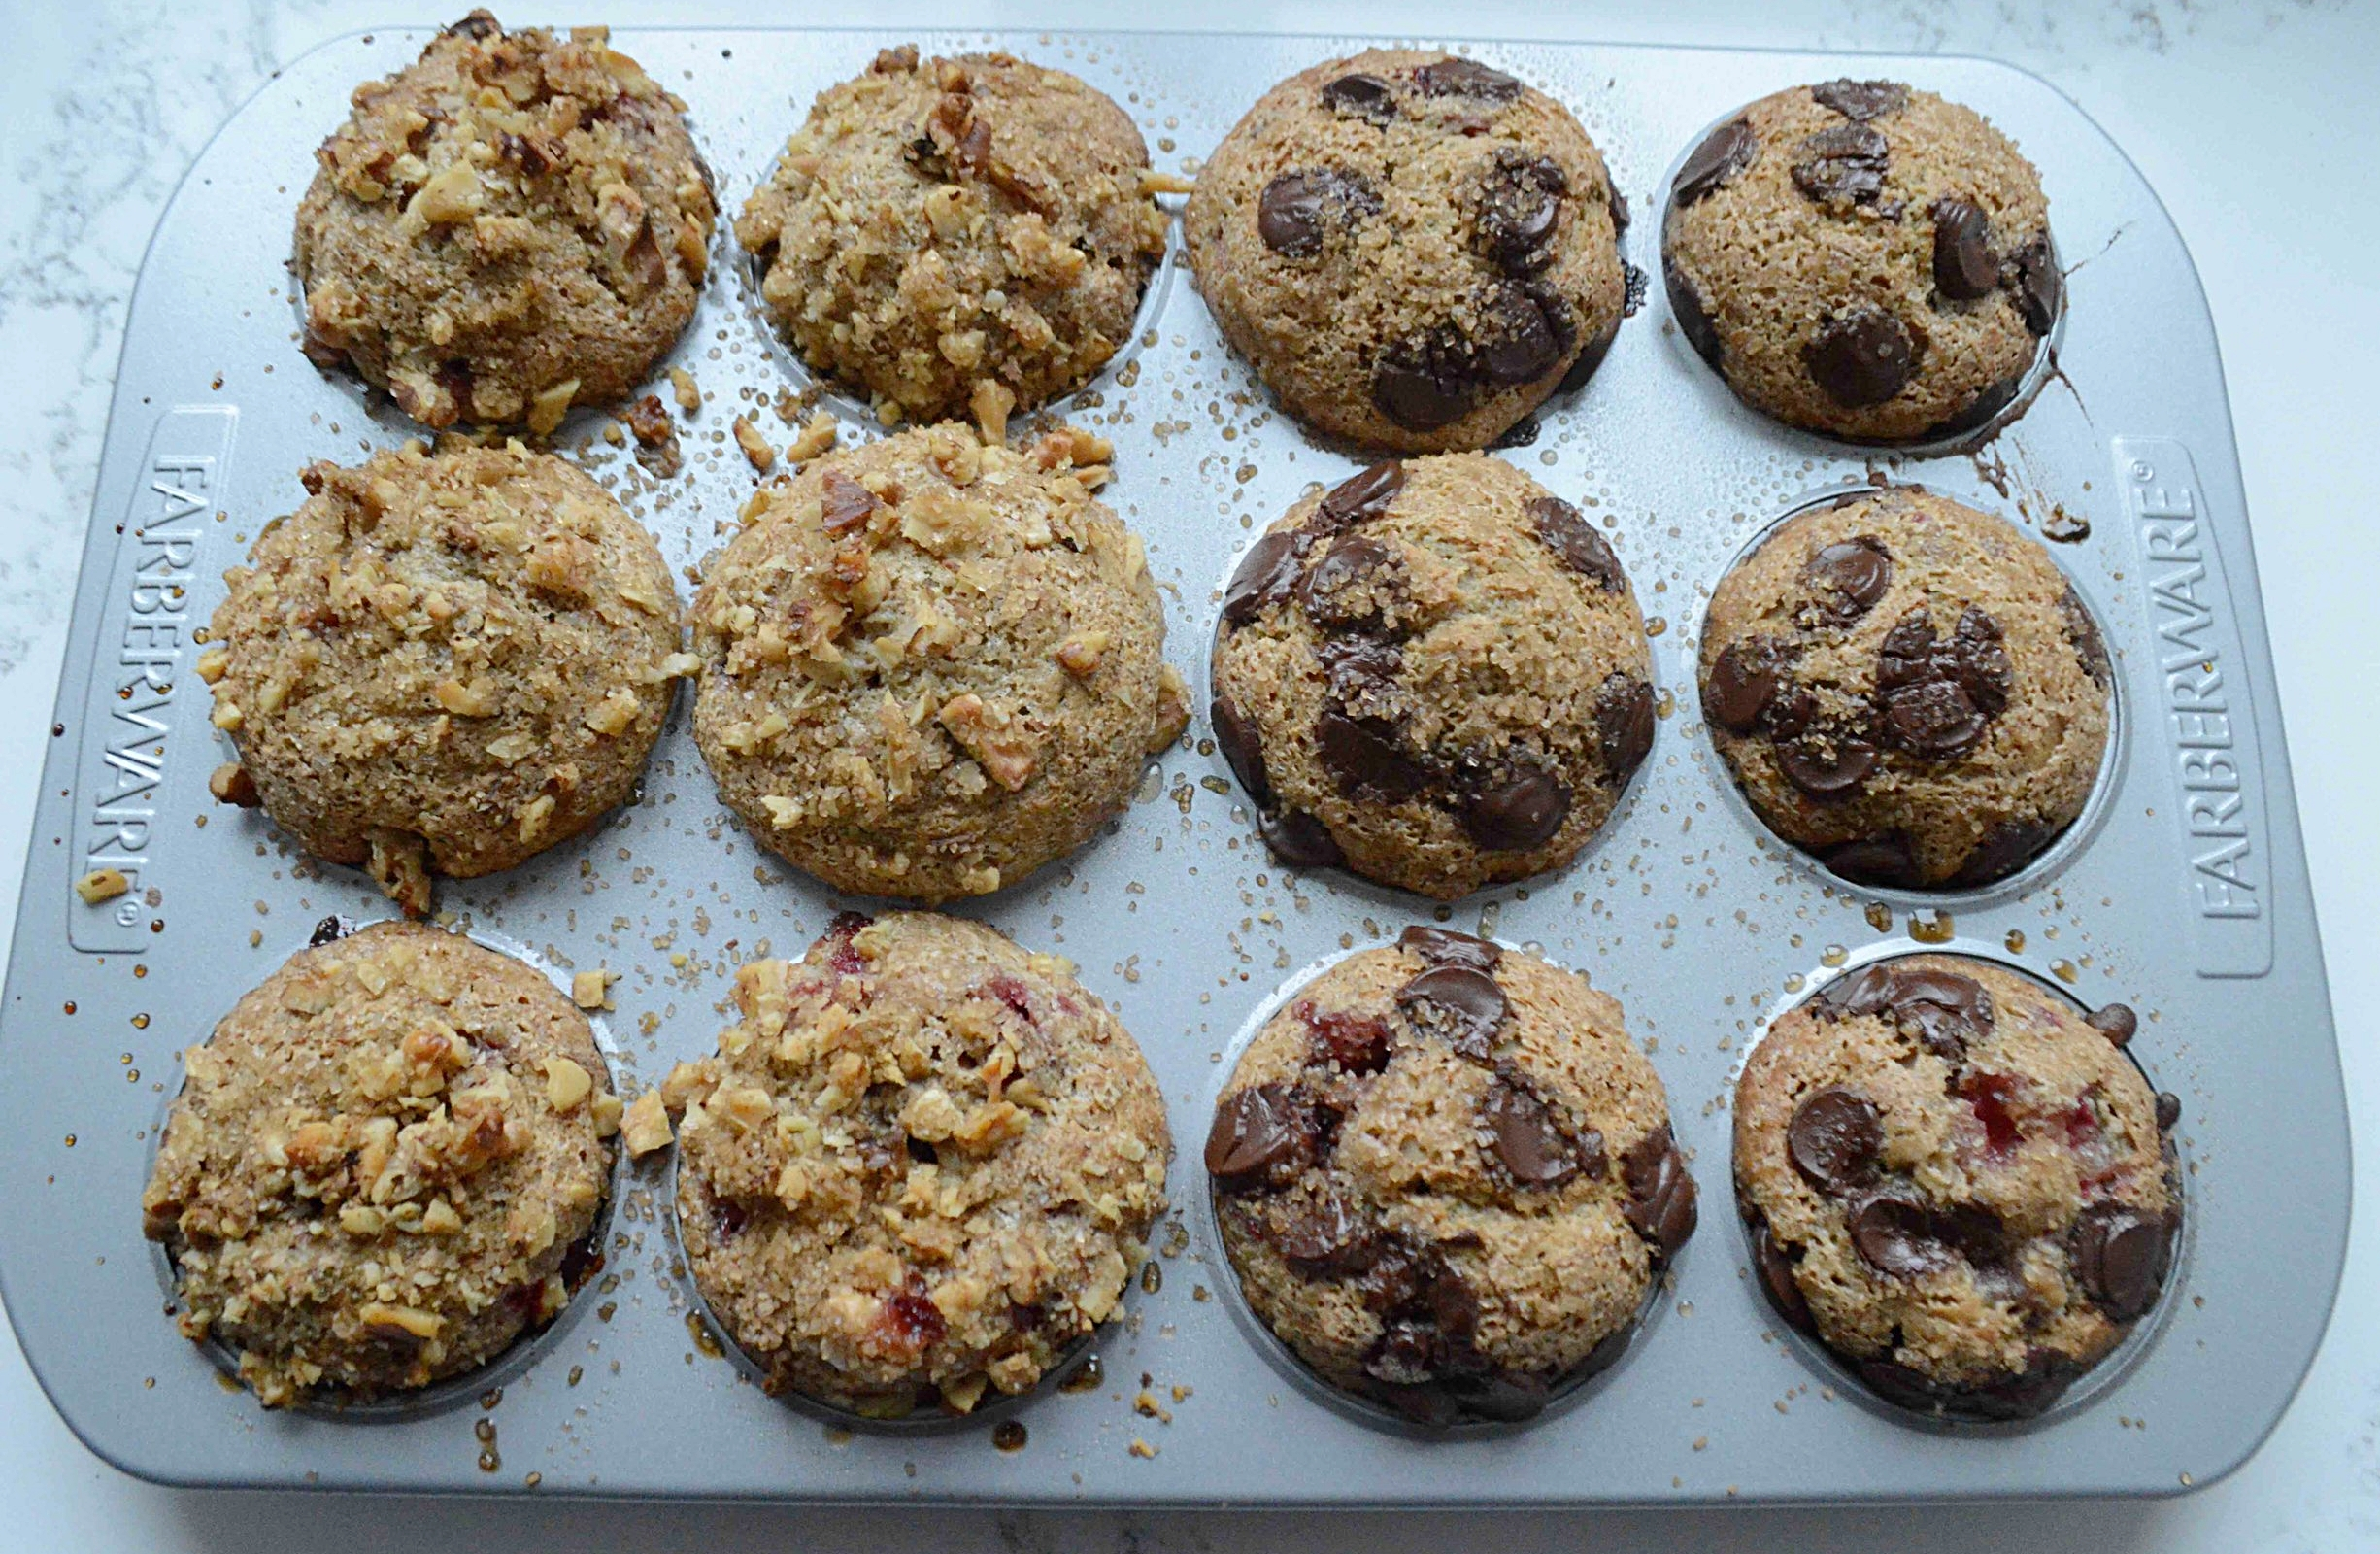 Whole Grain Strawberry Muffins with Walnuts and Chocolate